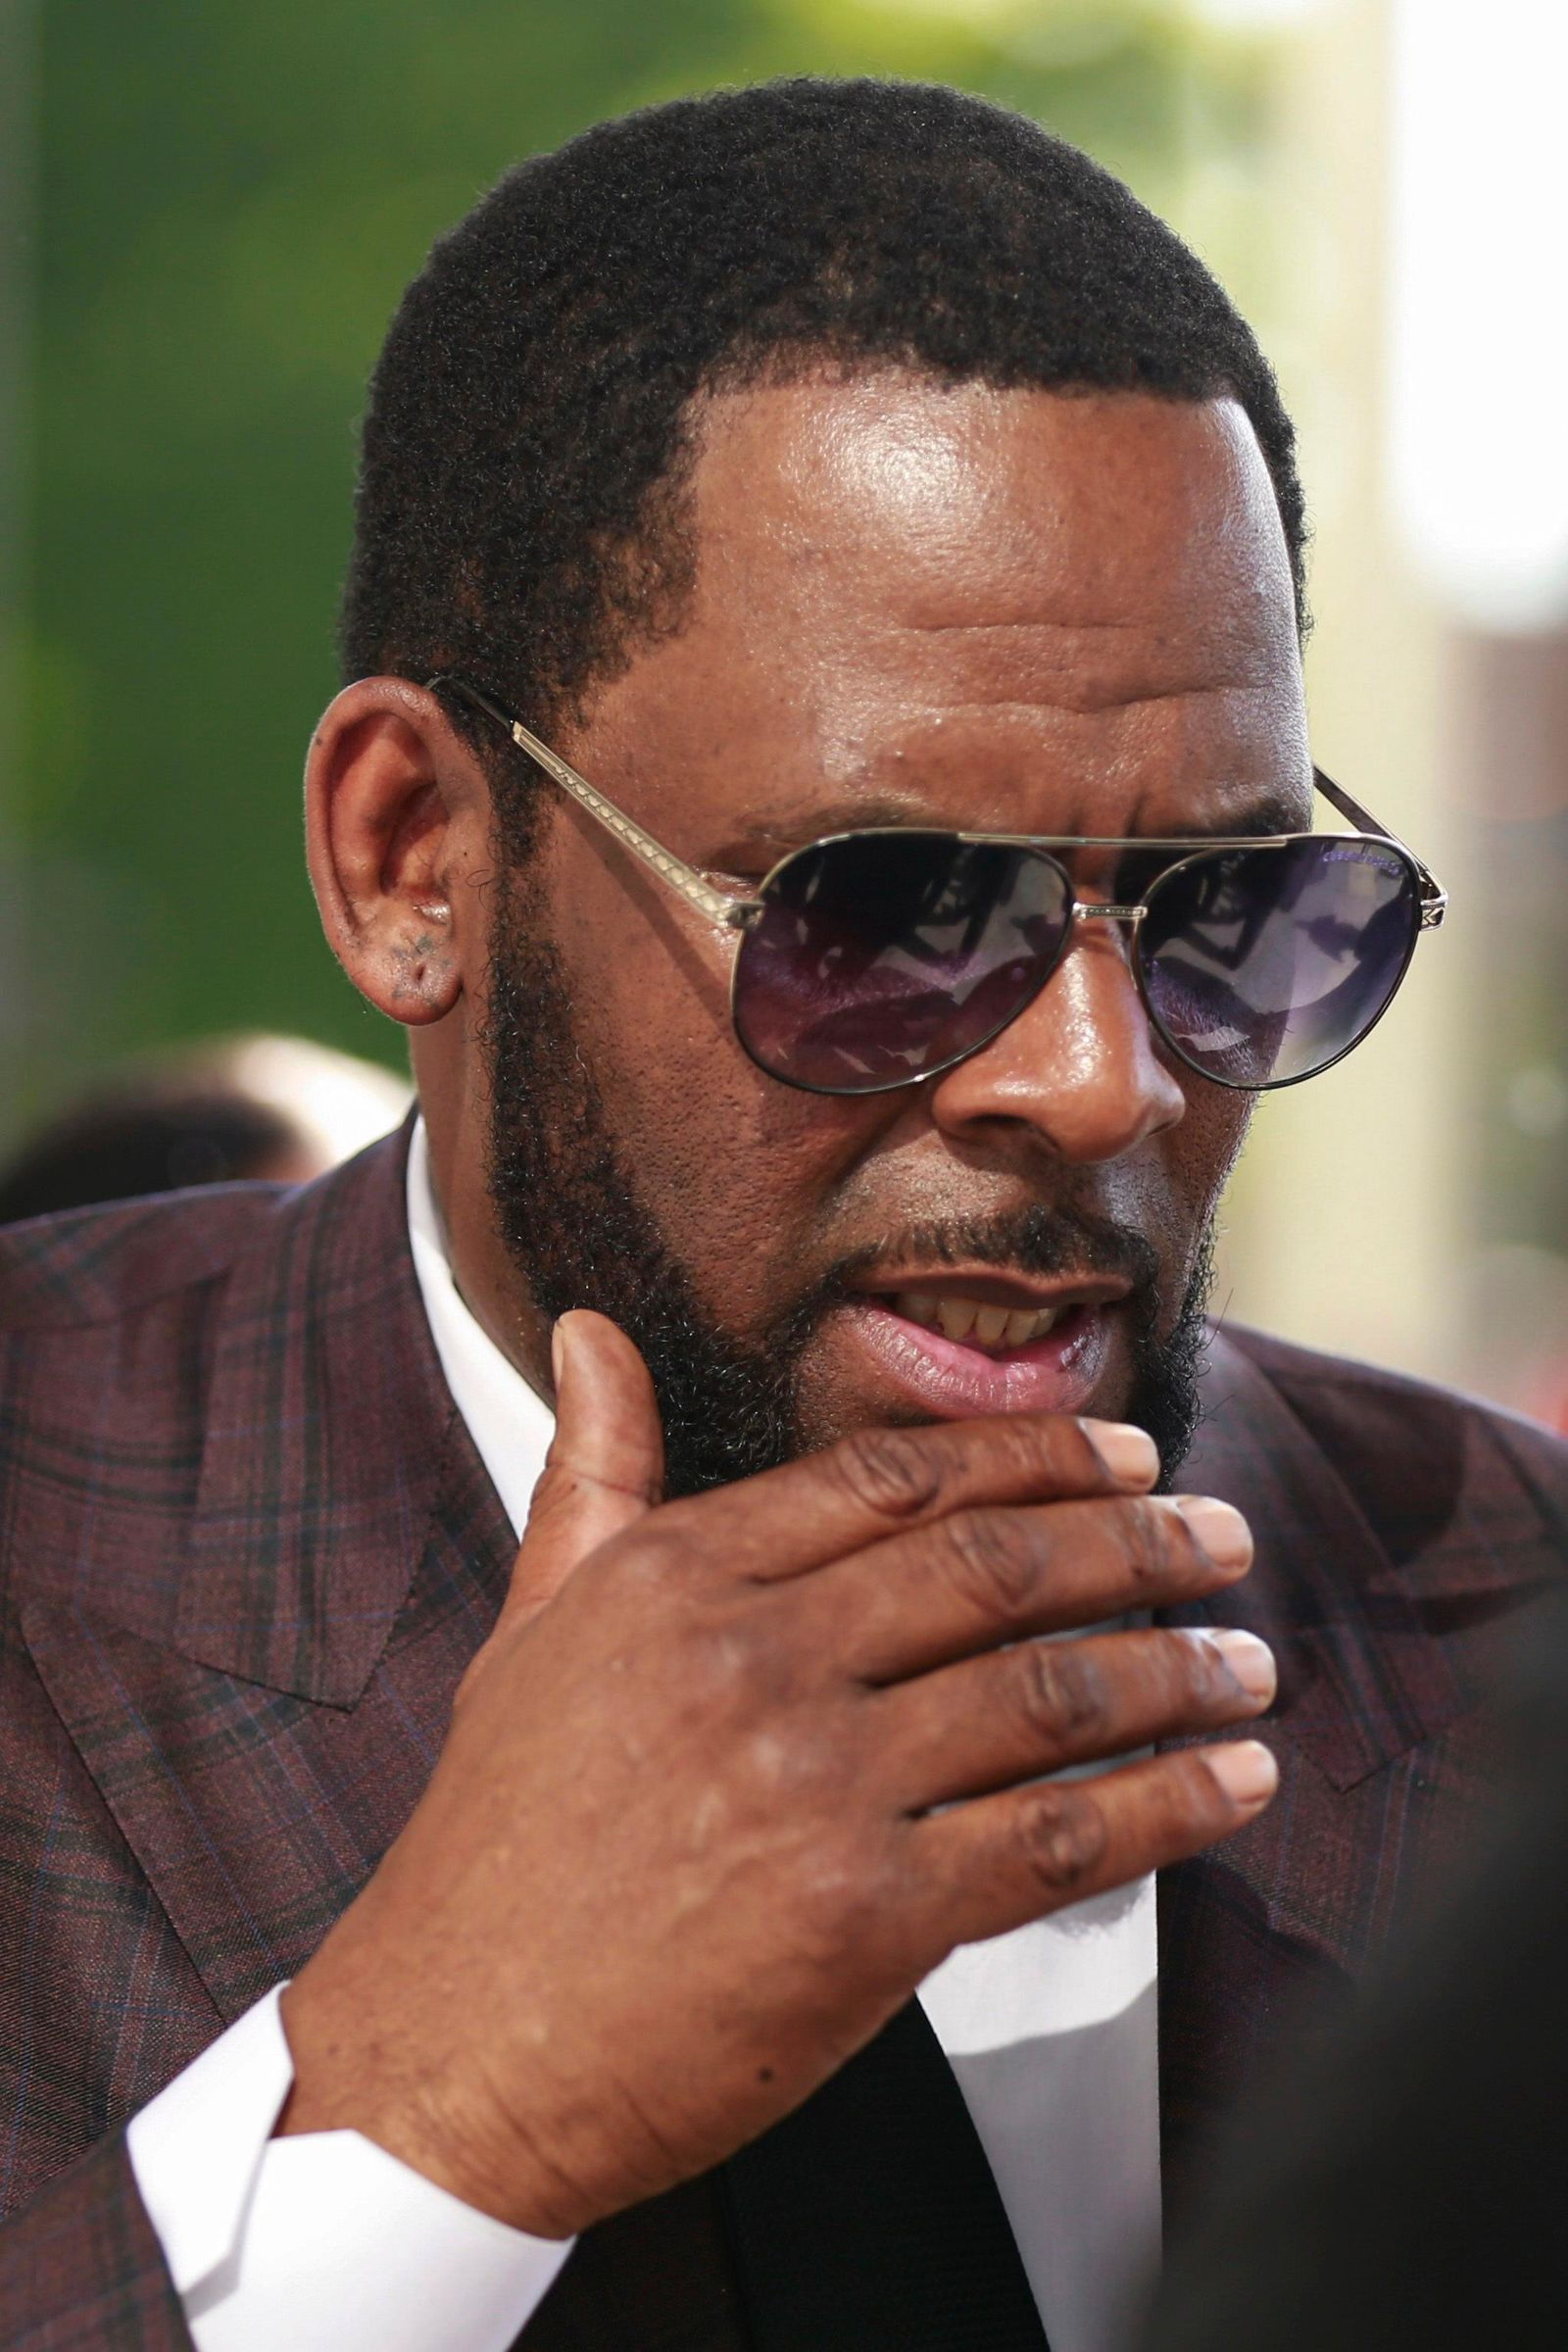 R&B singer R. Kelly arrives at the Leighton Criminal Court building for an arraignment on sex-related felonies Wednesday, June 26, 2019 in Chicago. (AP Photo/Amr Alfiky)